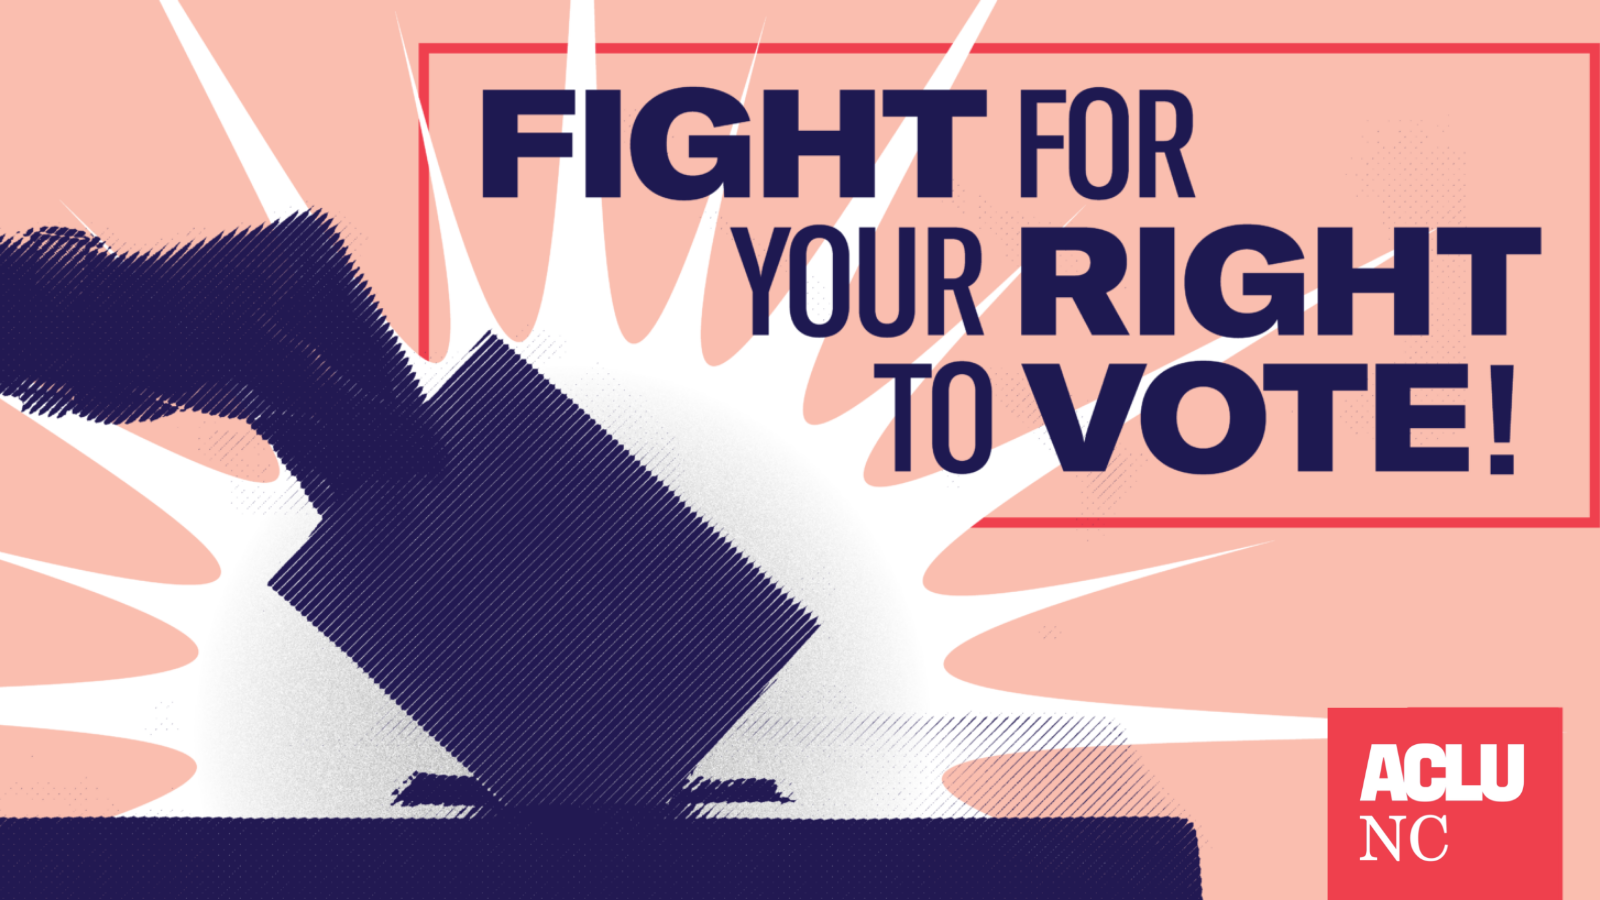 Fight for your right to vote!